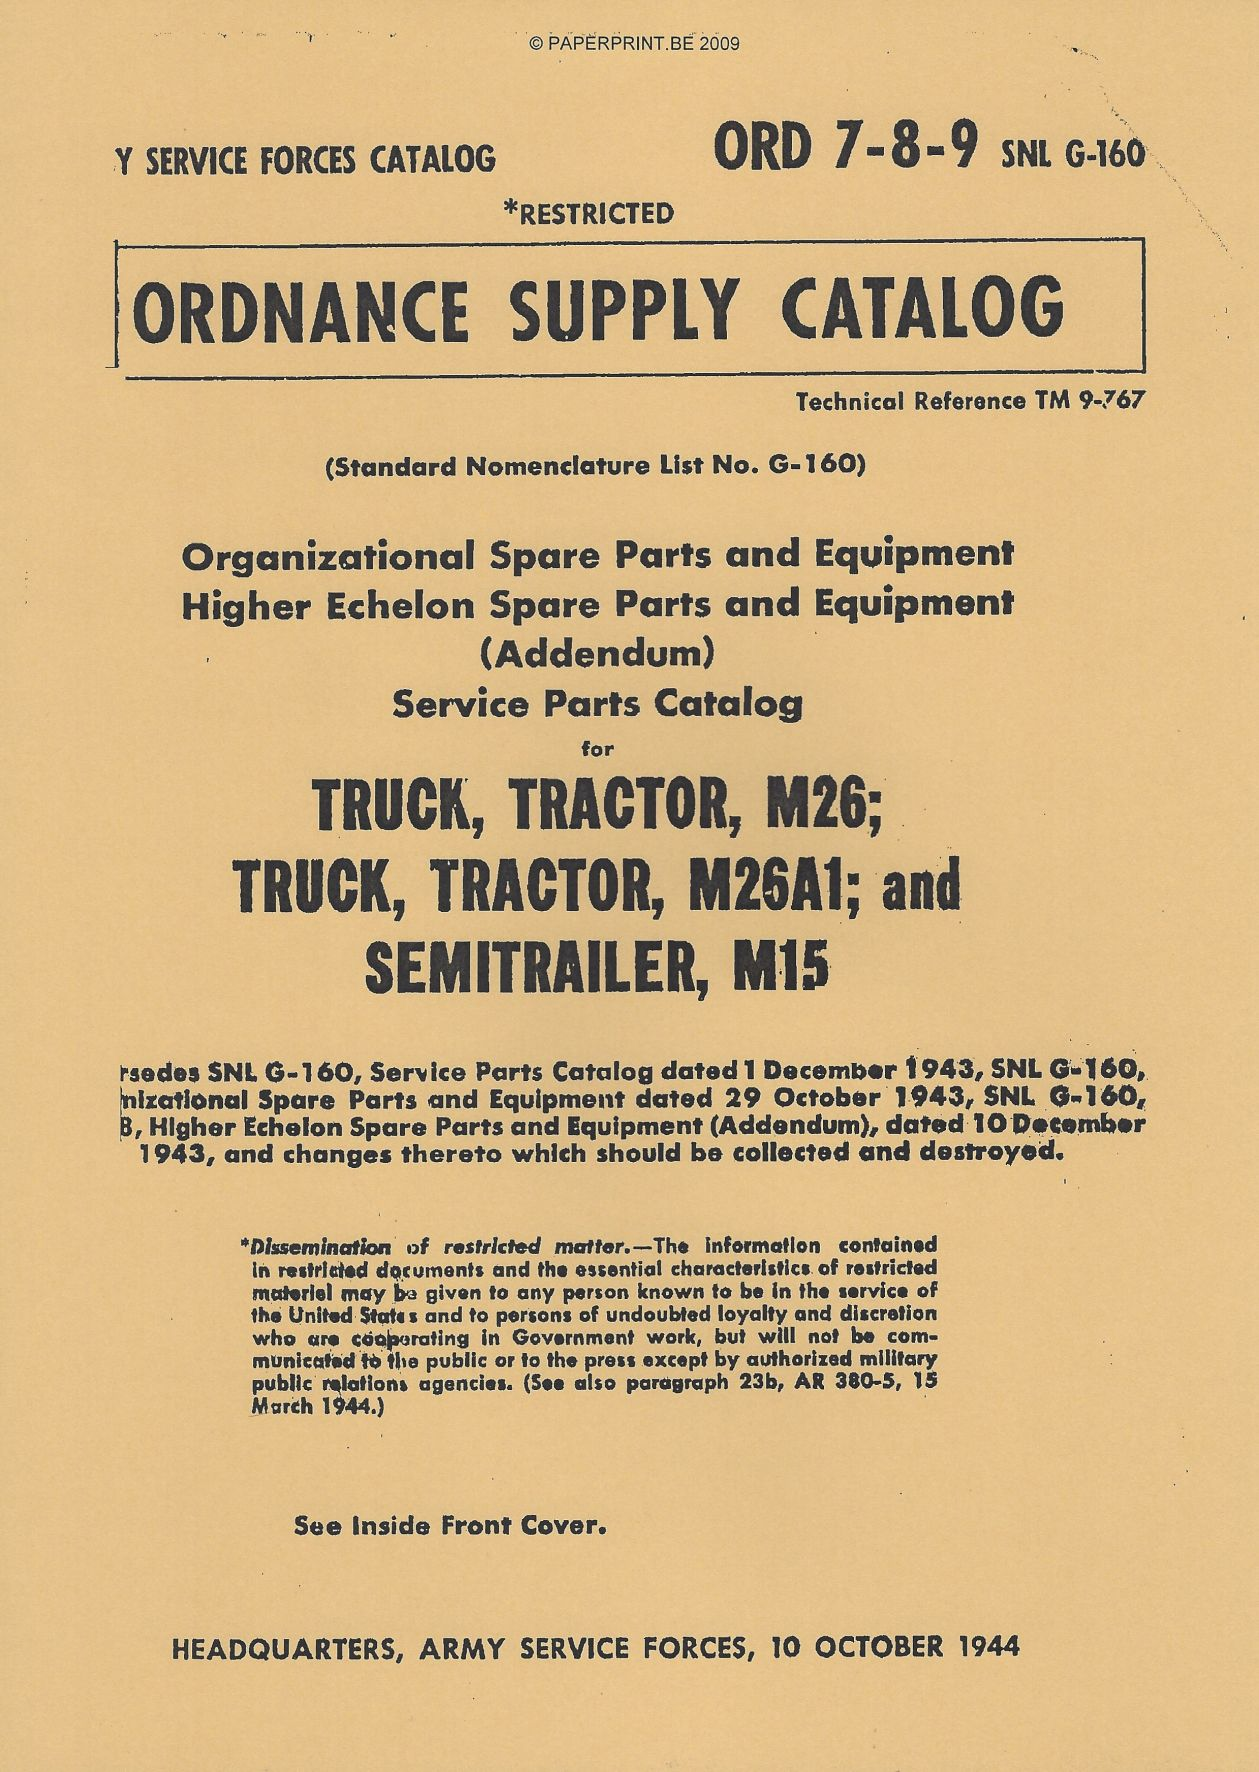 SNL G-160 US SERVICE PARTS CATALOG FOR TRUCK, TRACTOR, M26 TRUCK, TRACTOR, M26A1, AND SEMITRAILER, M15